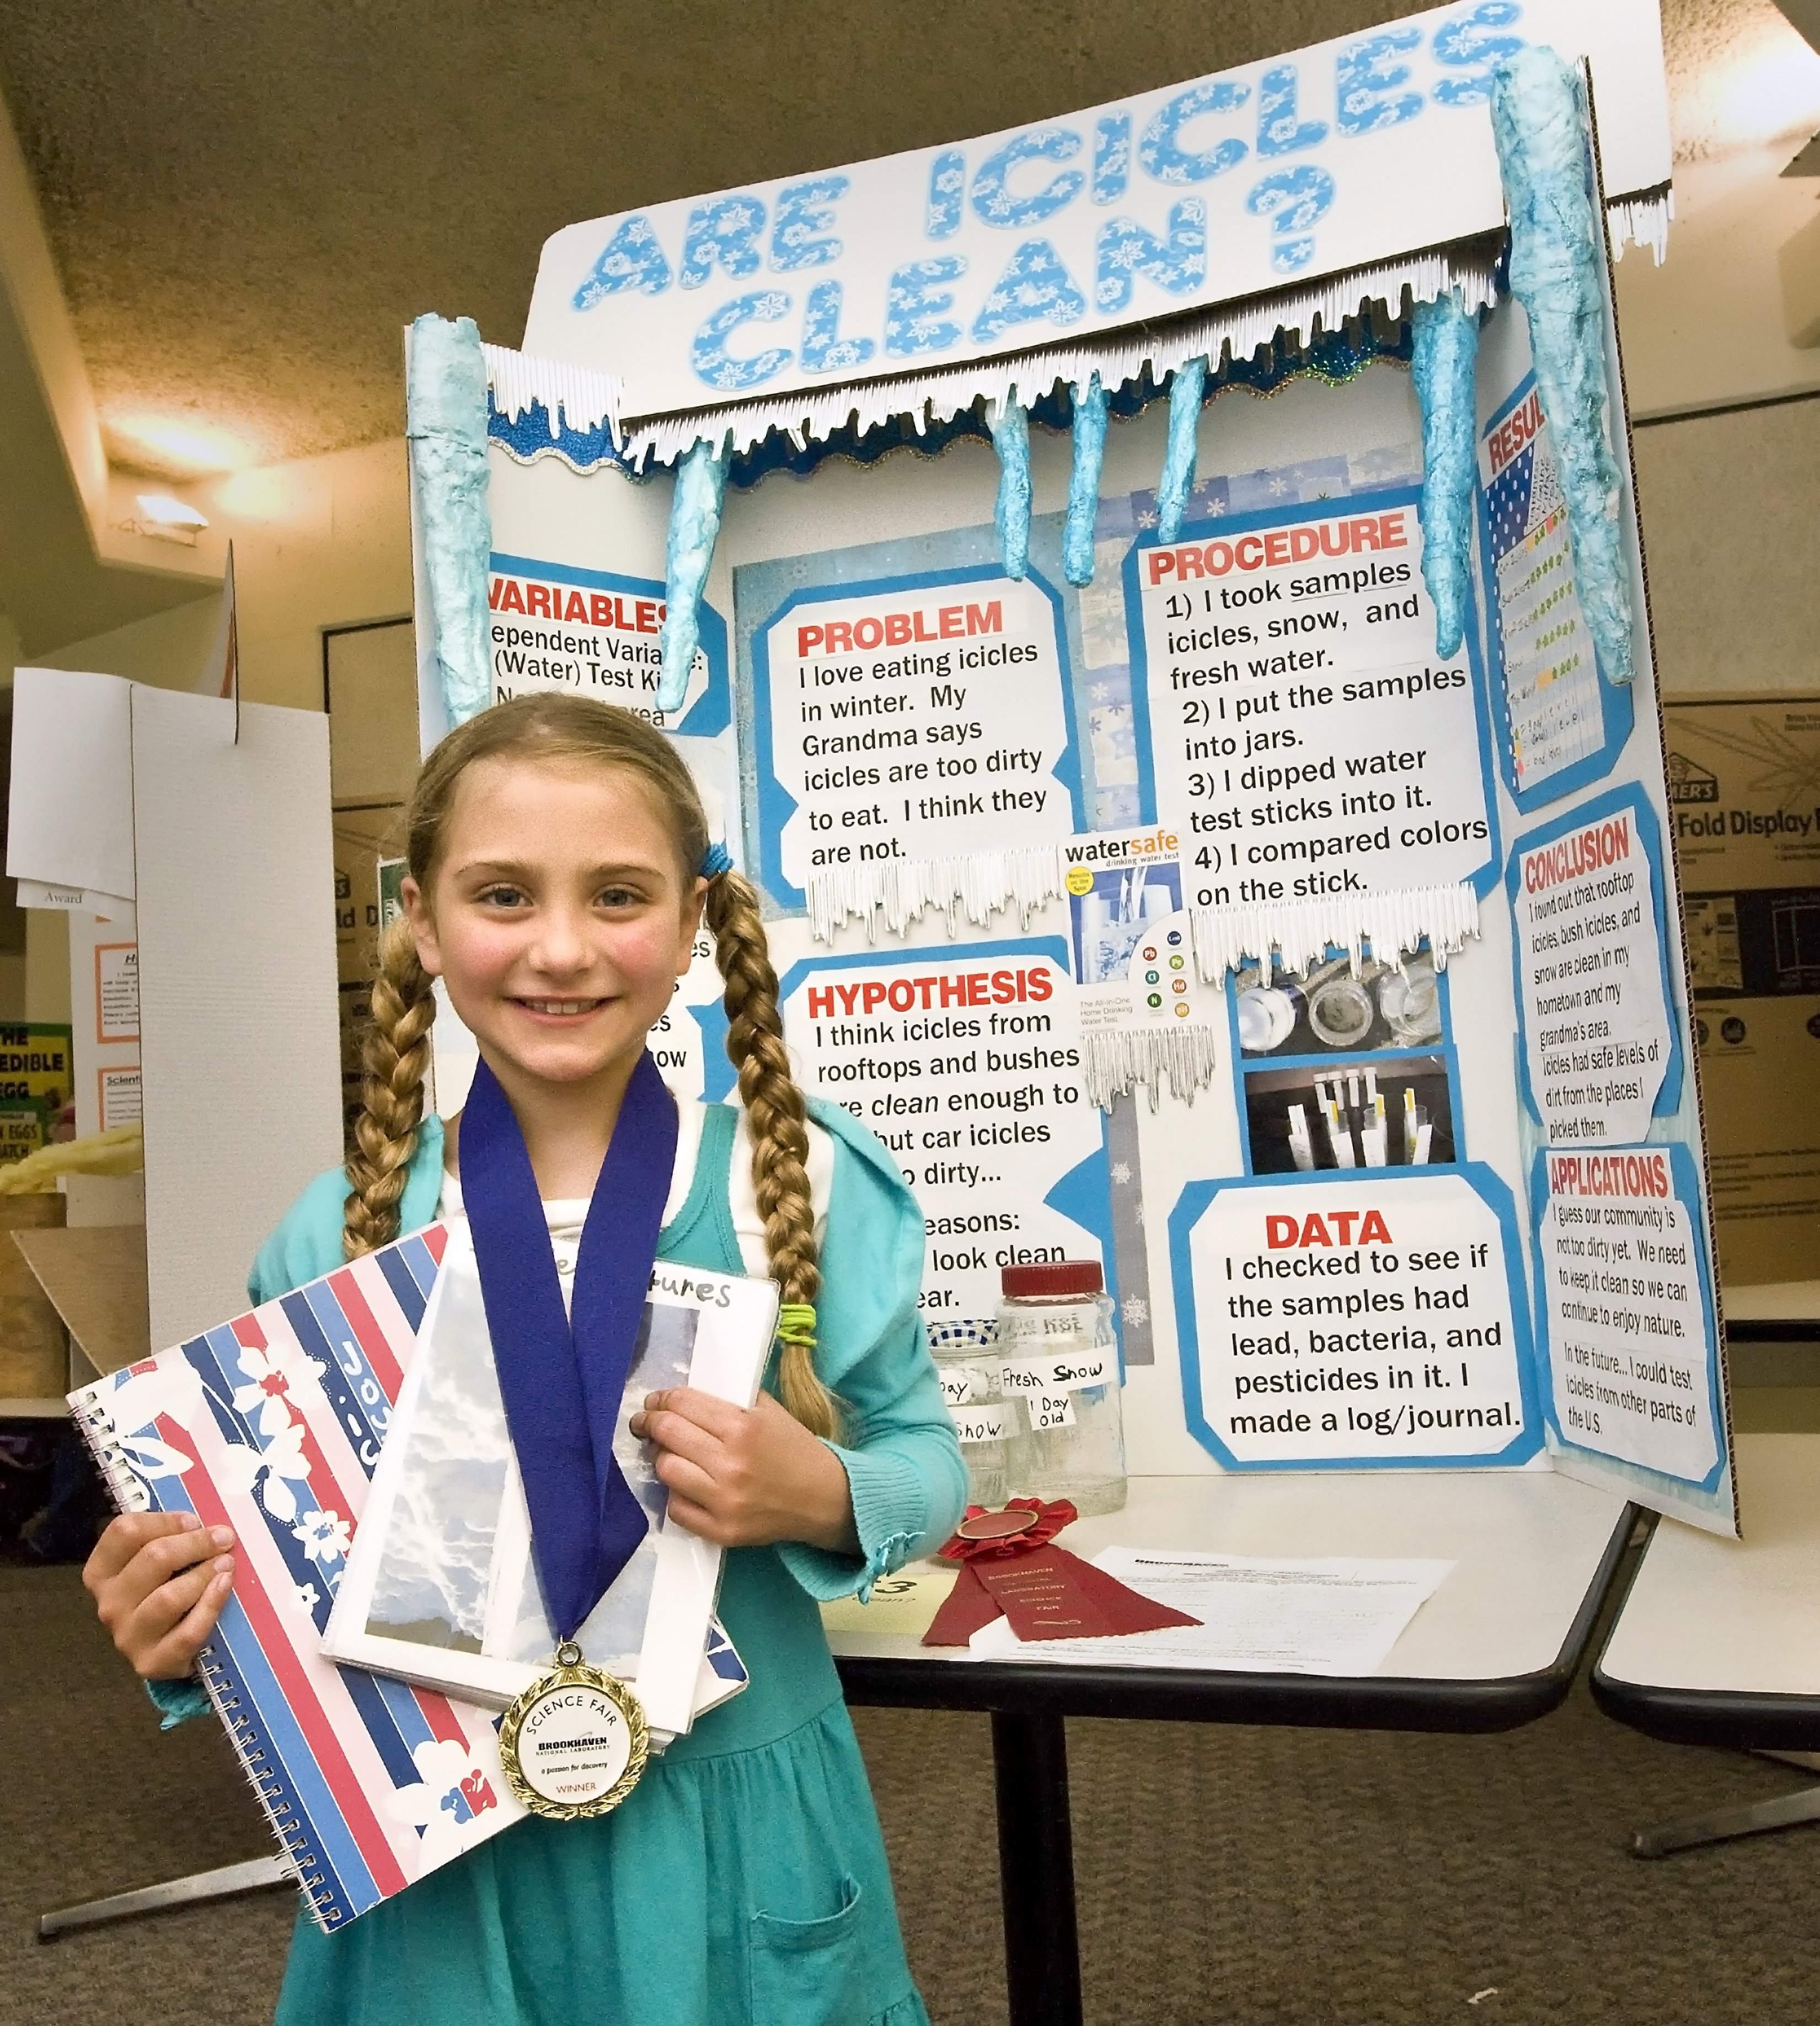 10 Stunning Award Winning Science Fair Ideas from ant control to wind energy winning projects at brookhaven 45 2021